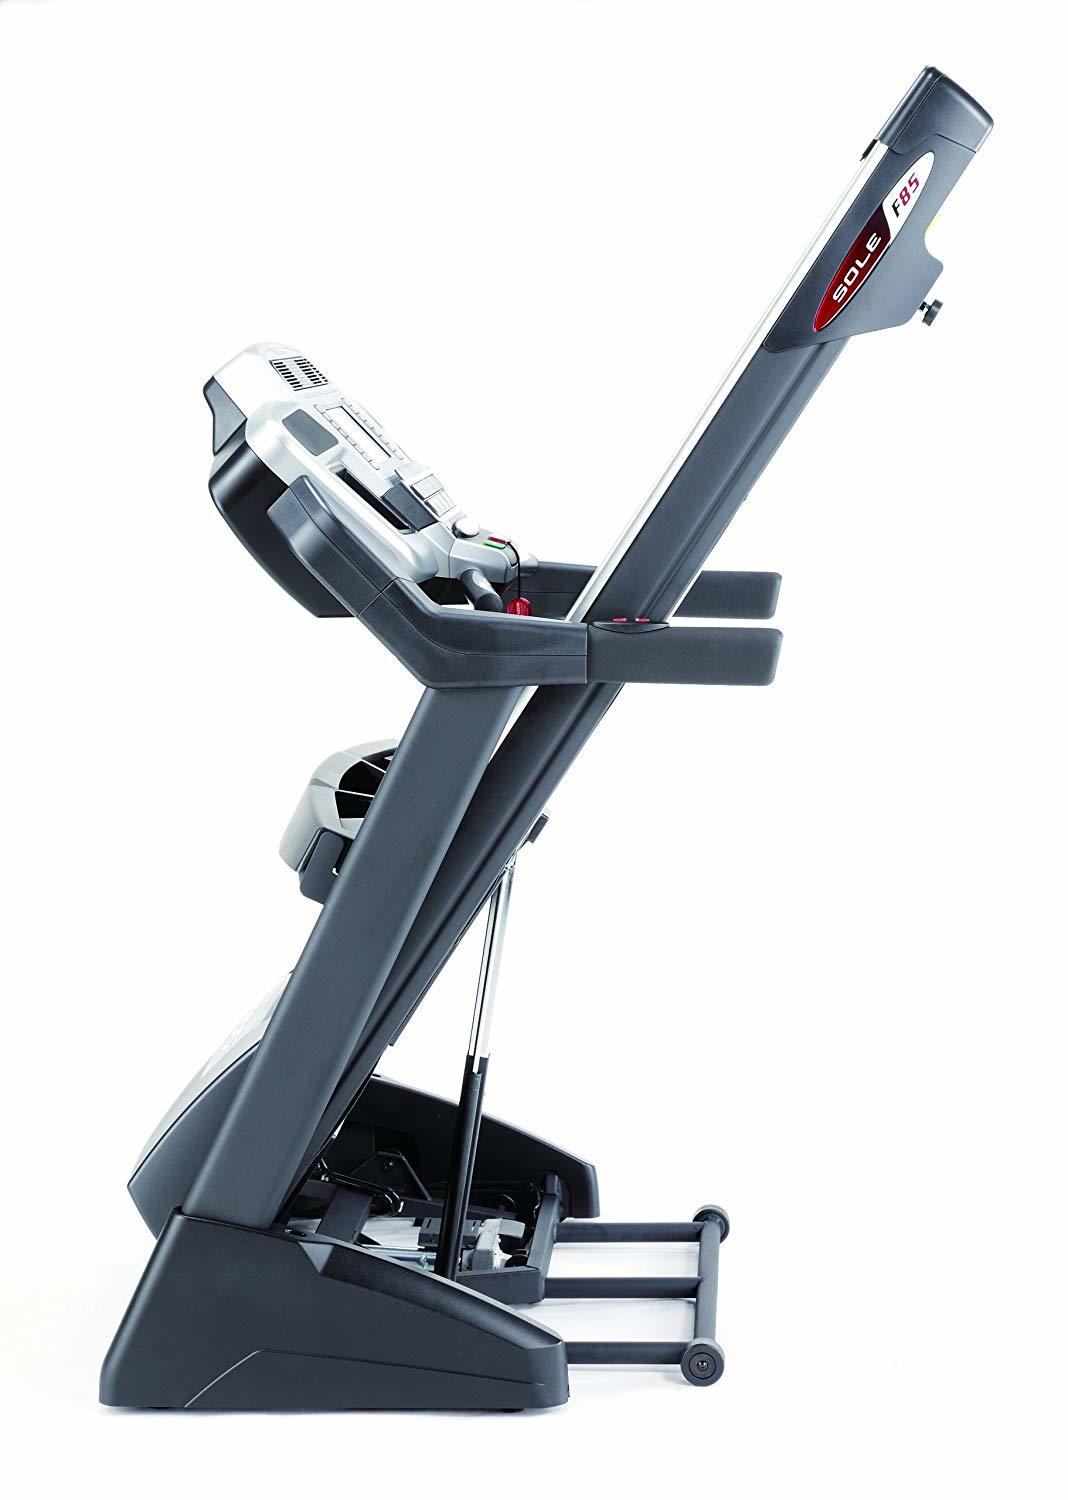 6 BEST commercial treadmills hands DOWN! 5